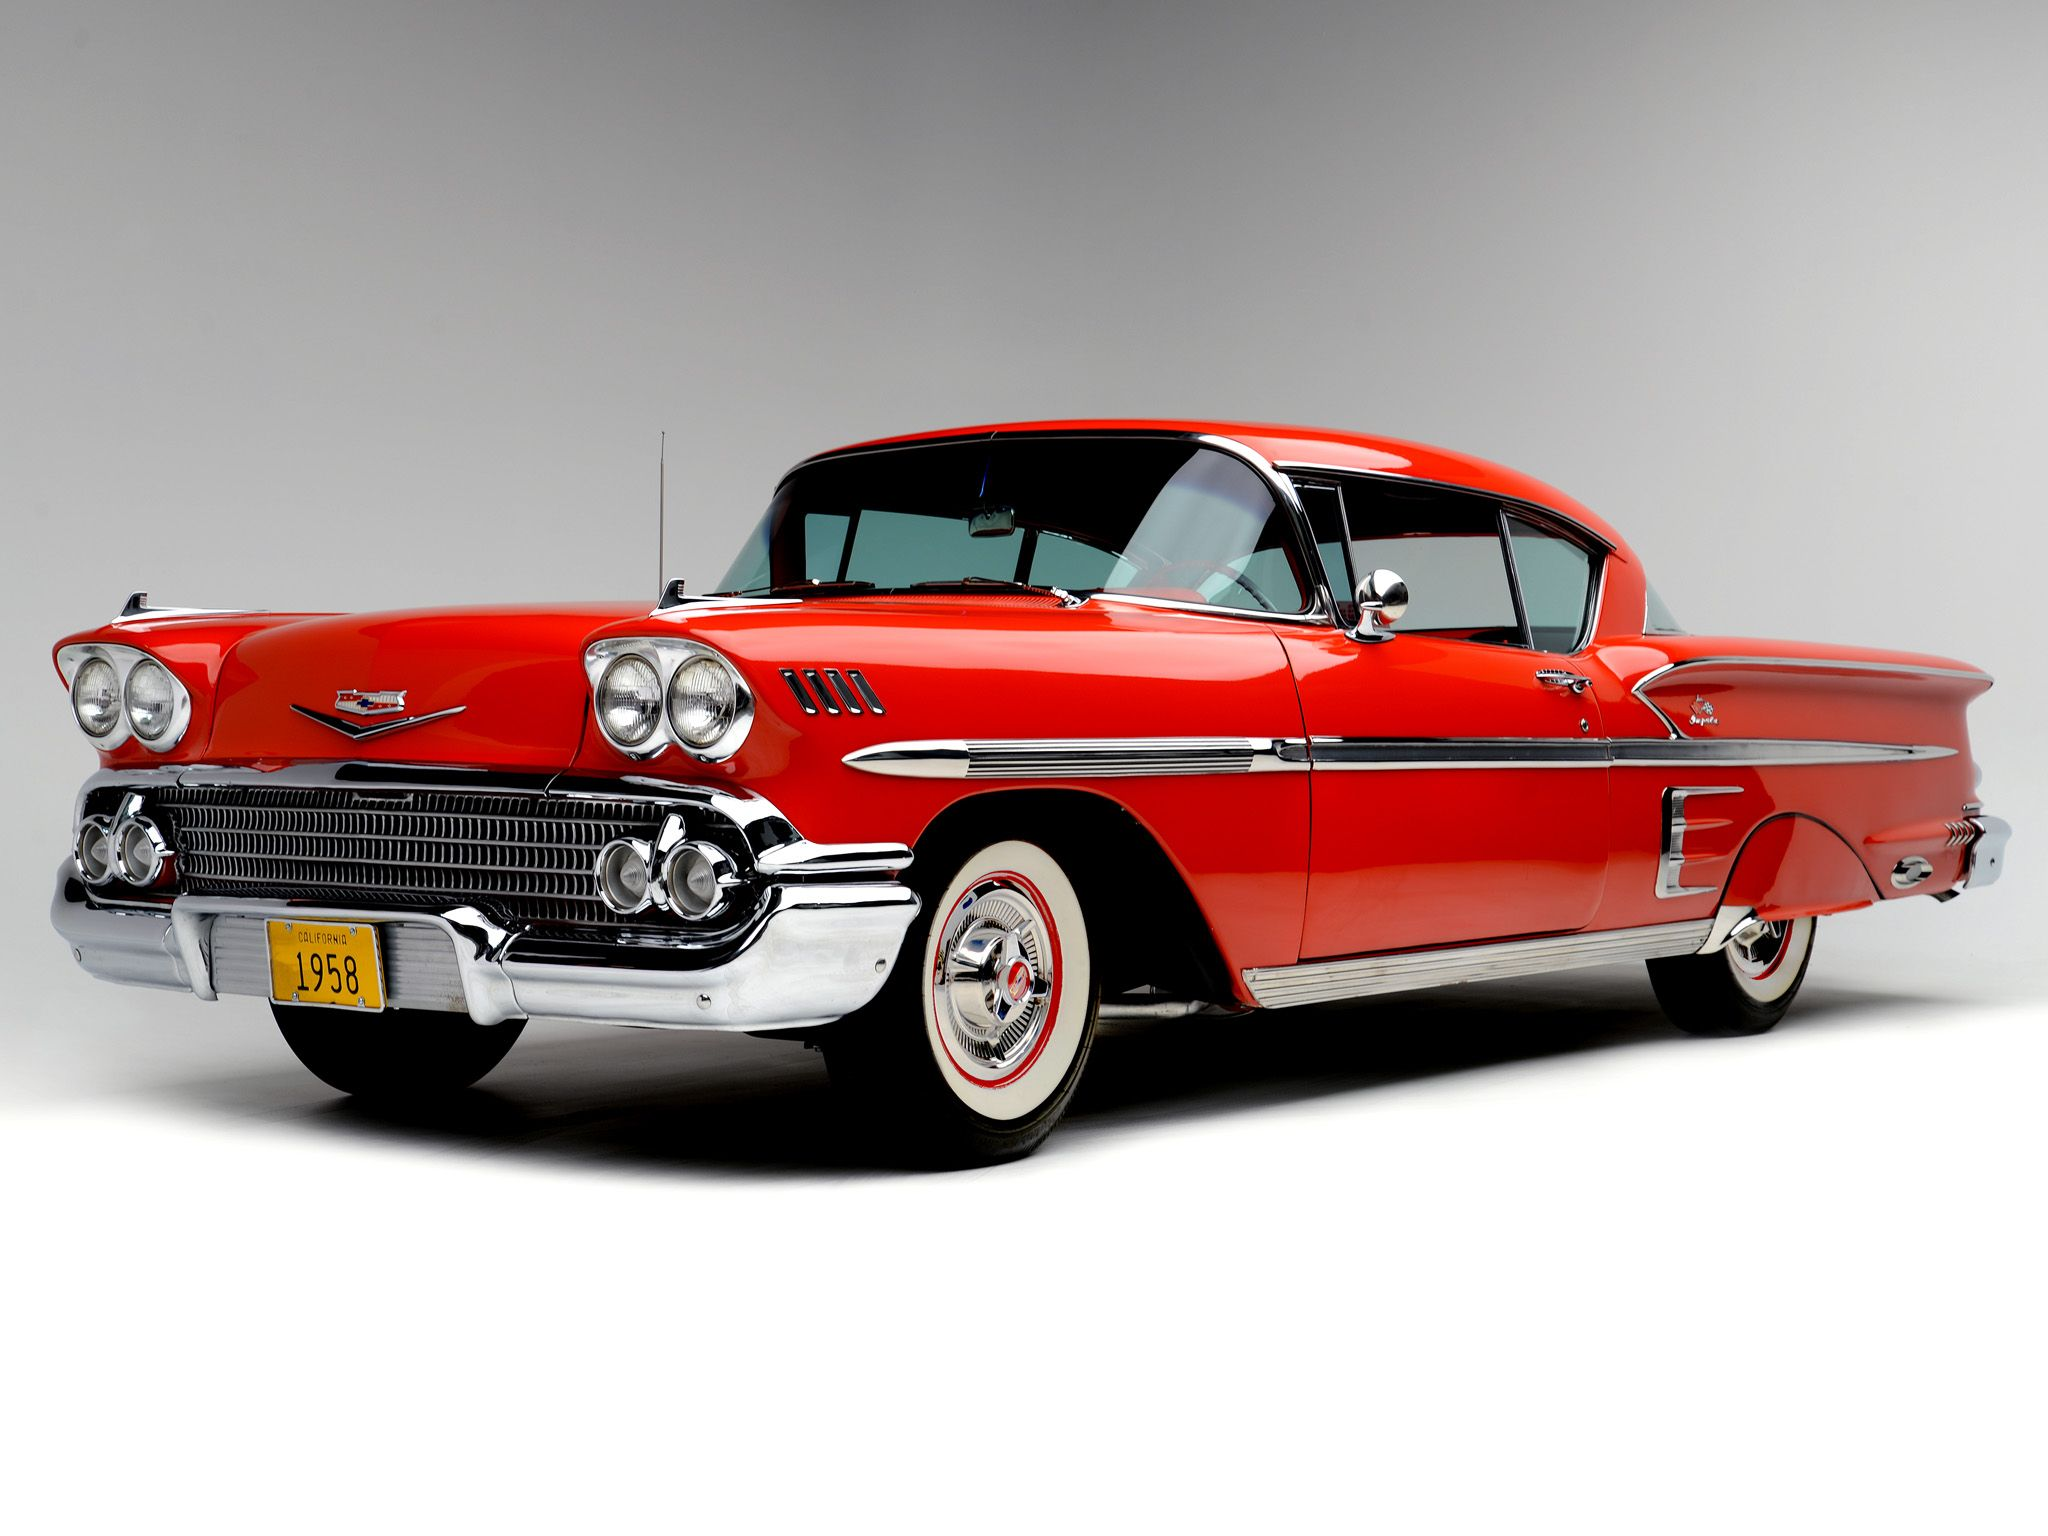 Chevrolet impala 1958 maintenance of old vehicles the material for new cogs casters gears could be cast polyamide which i cast polyamide can produce